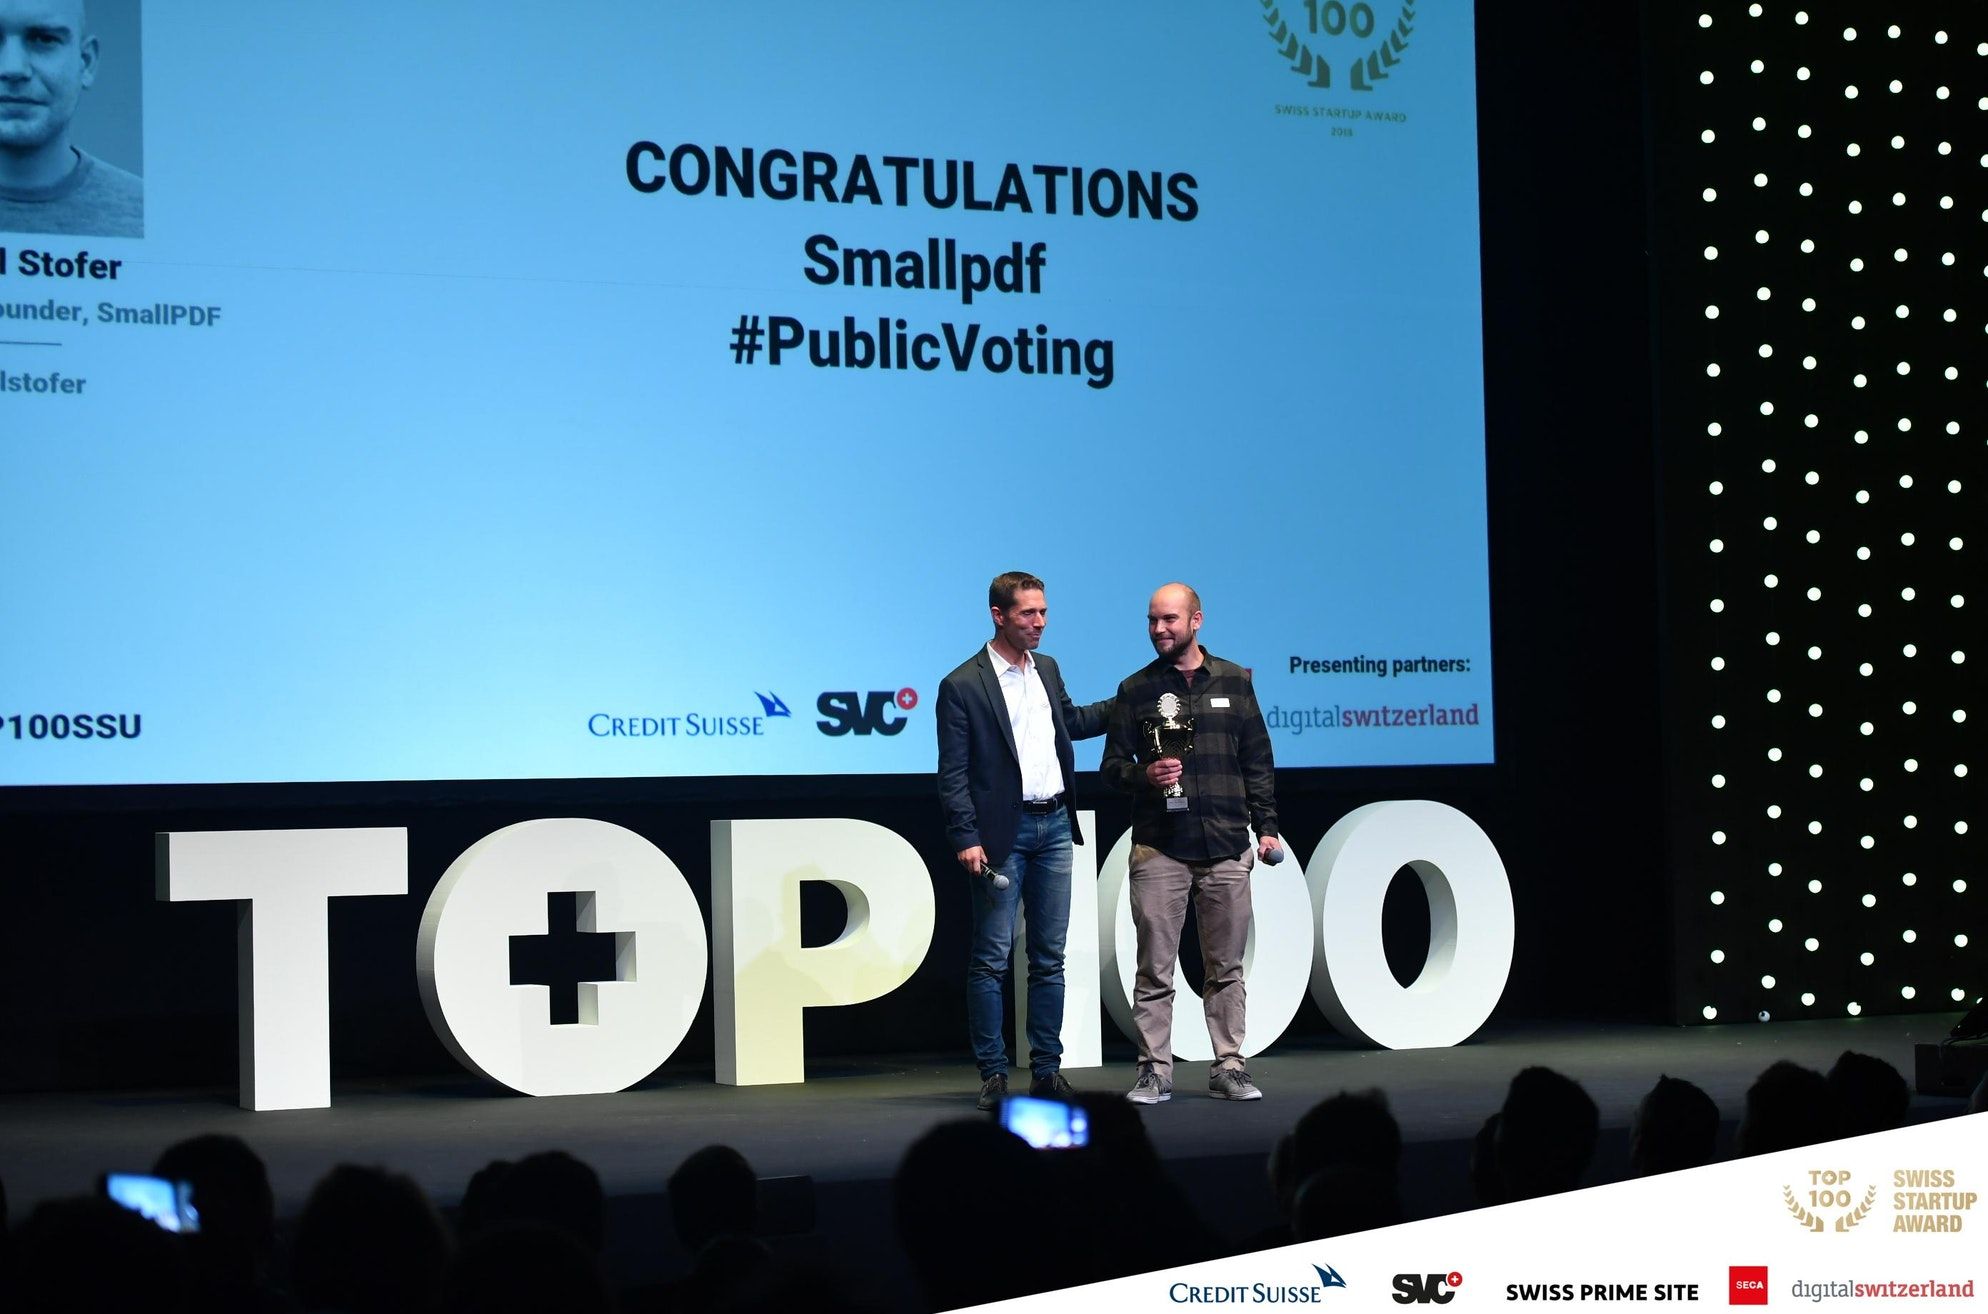 Smallpdf CEO Dennis Just's leadership lesson: 'Do not make any rash decisions and accept help'